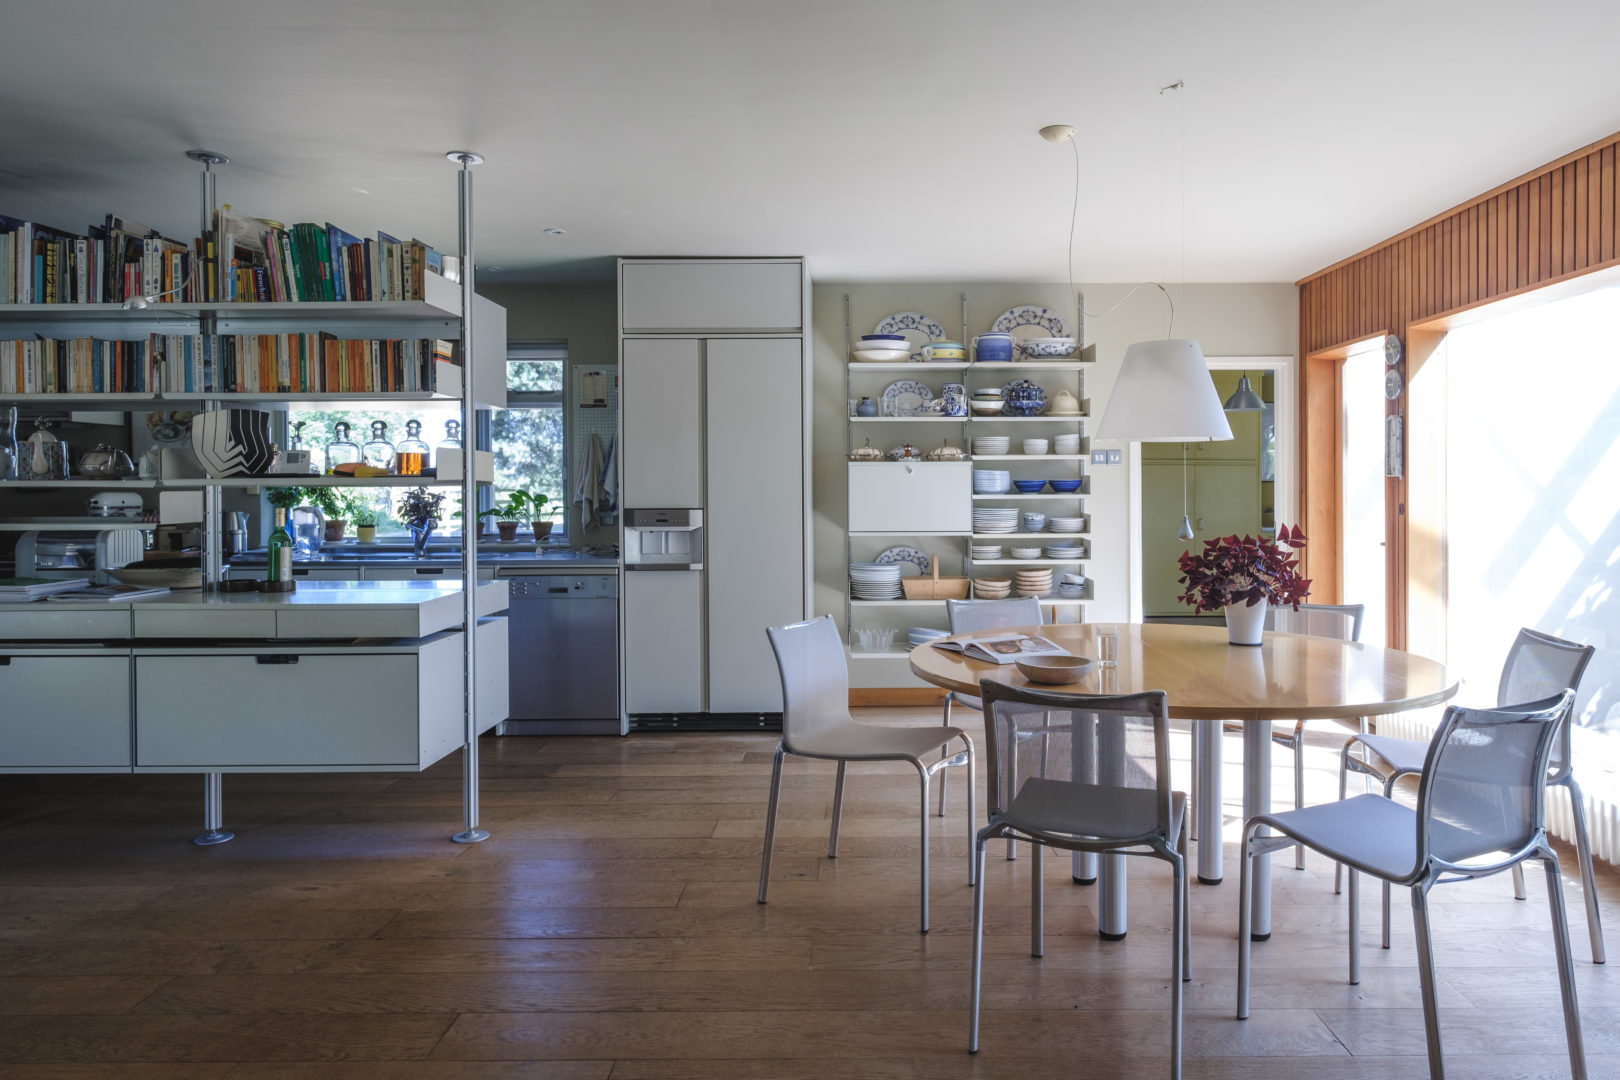 Aucoot - Grasslands - Vitsoe - A Modern House and Studio in the Countryside